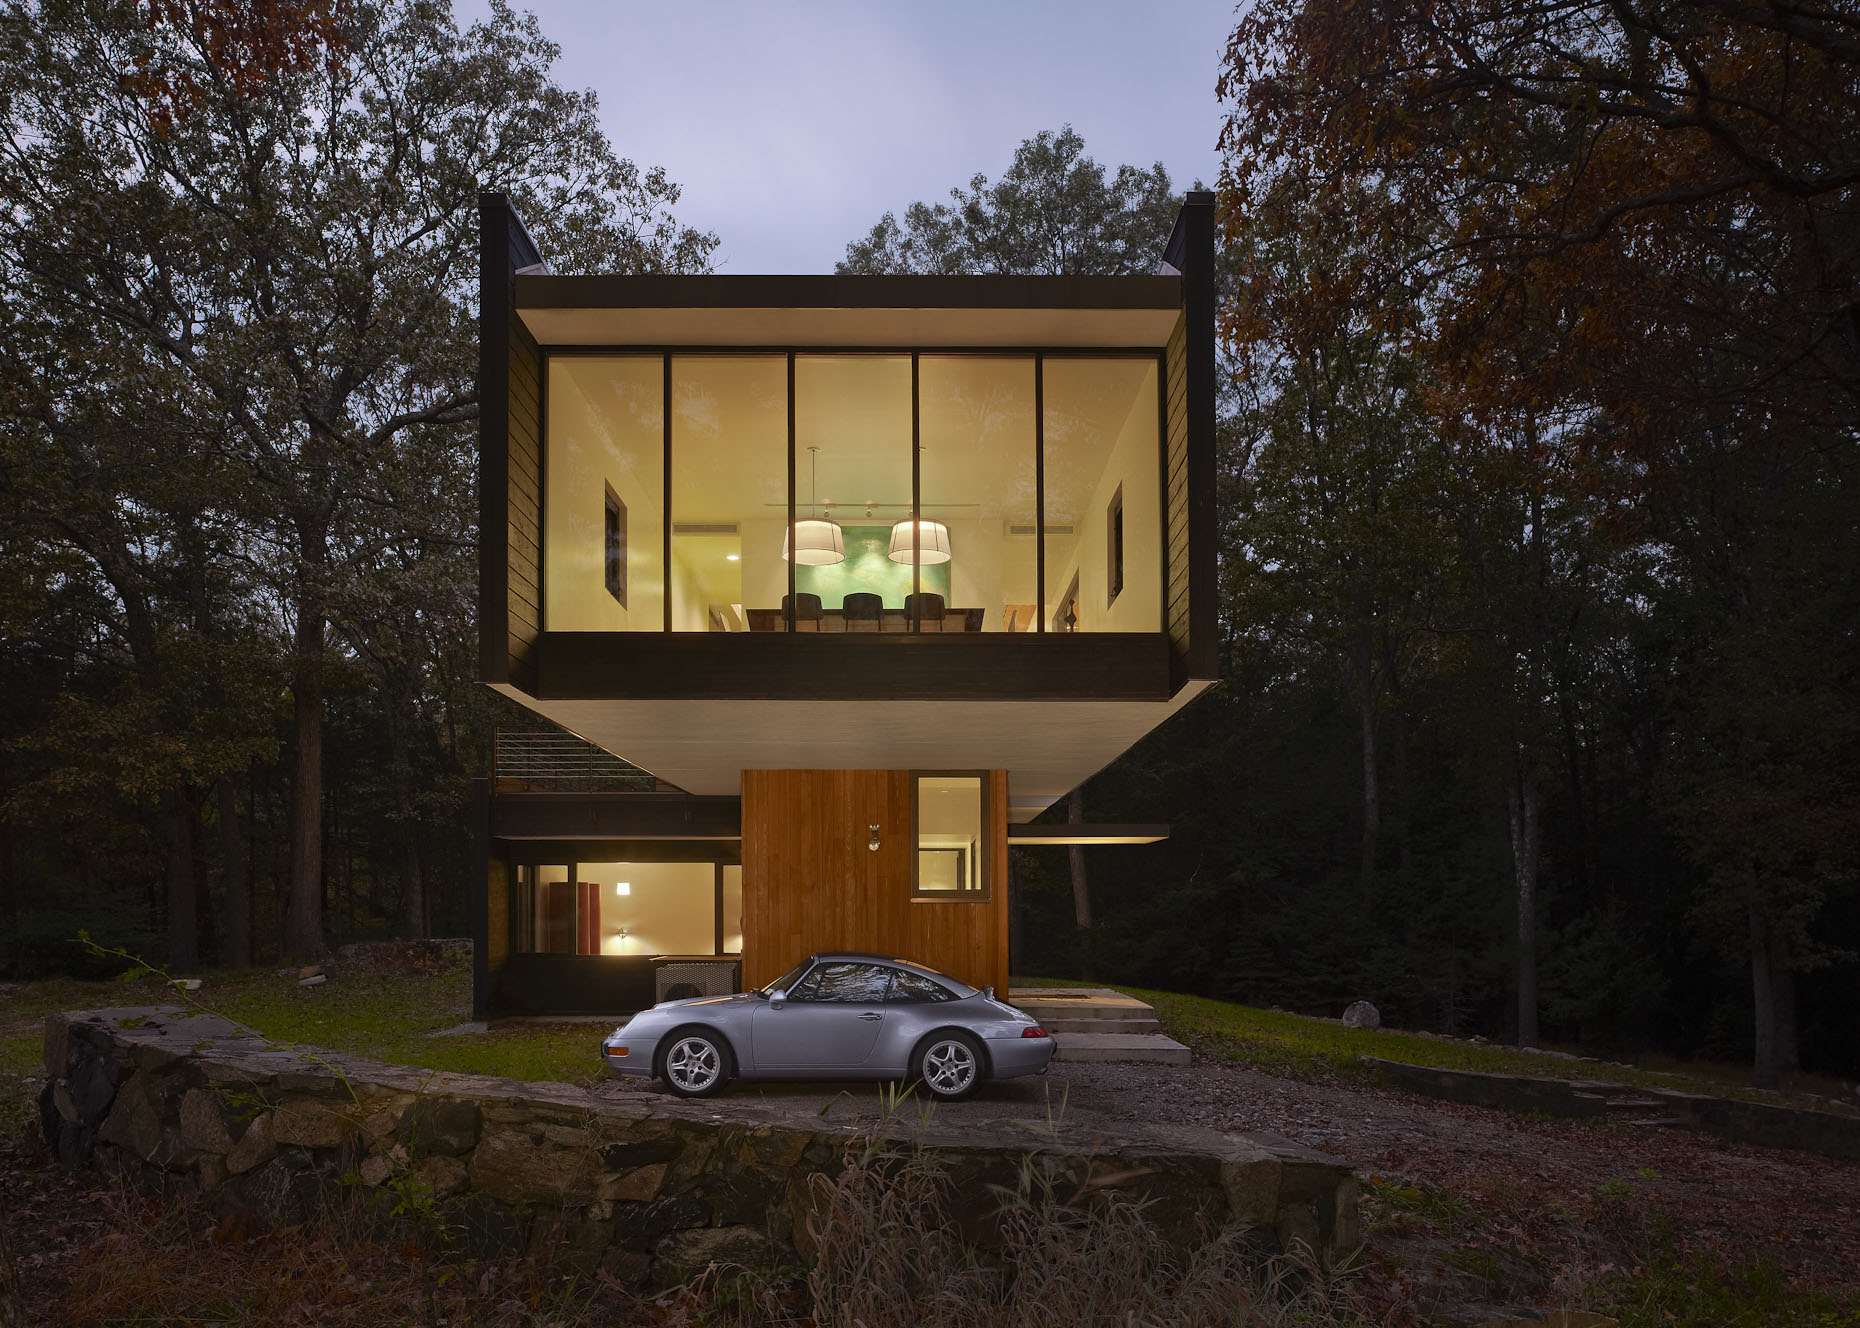 Waccabuc Private Residence by Chan-Li Lin & Denise Ferris photographed by Brad Feinknopf based in COlumbus, Ohio